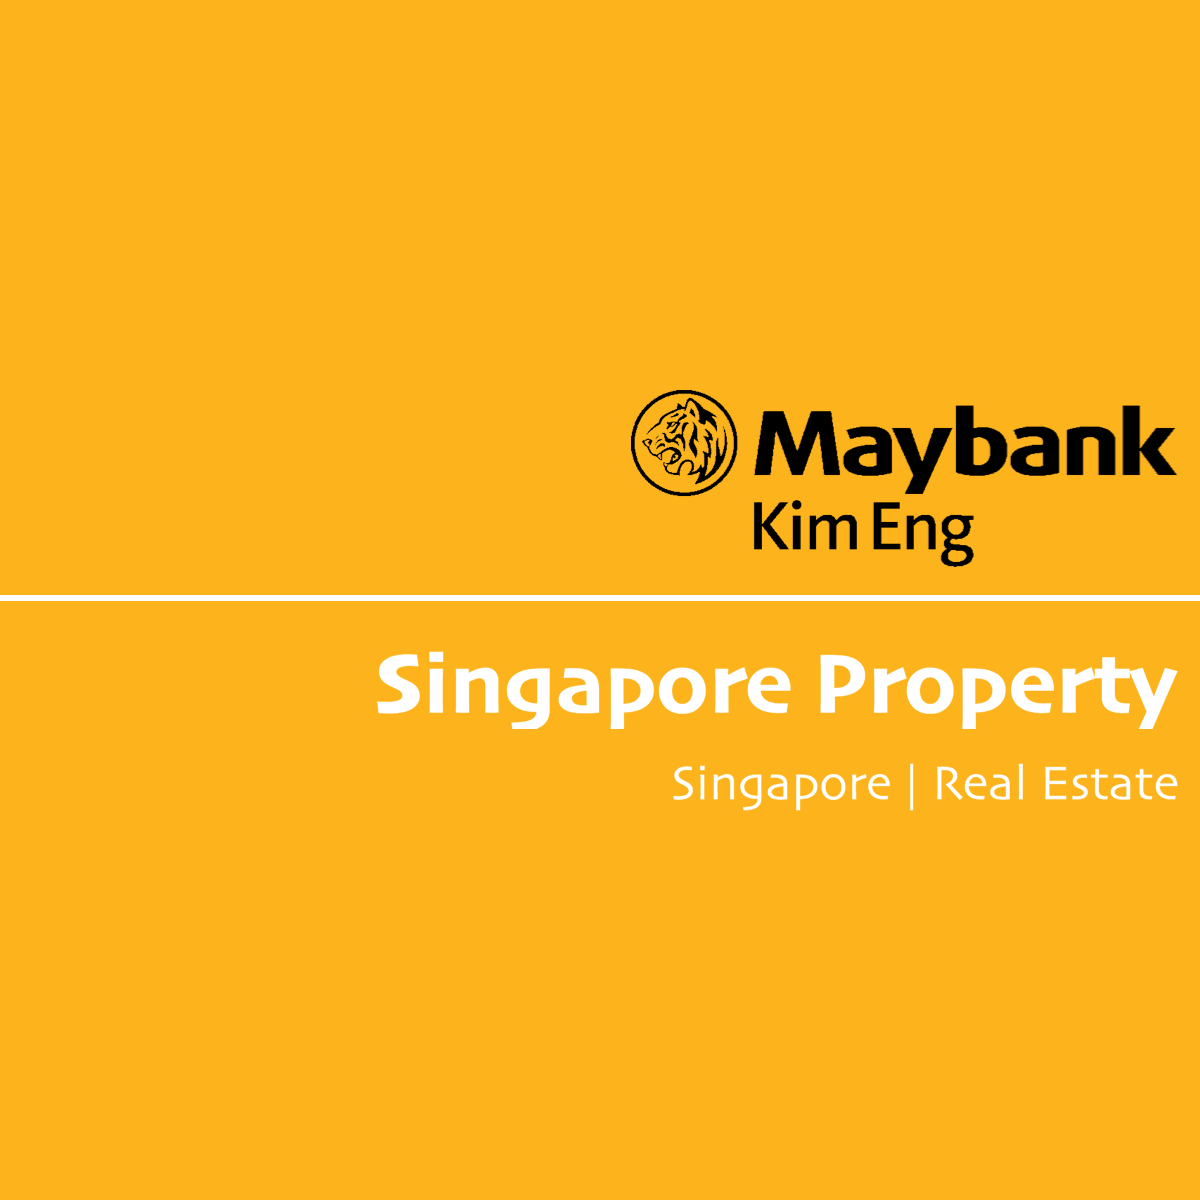 Singapore Property - Maybank Kim Eng Research 2018-09-05: Subdued Bids Underscore Caution